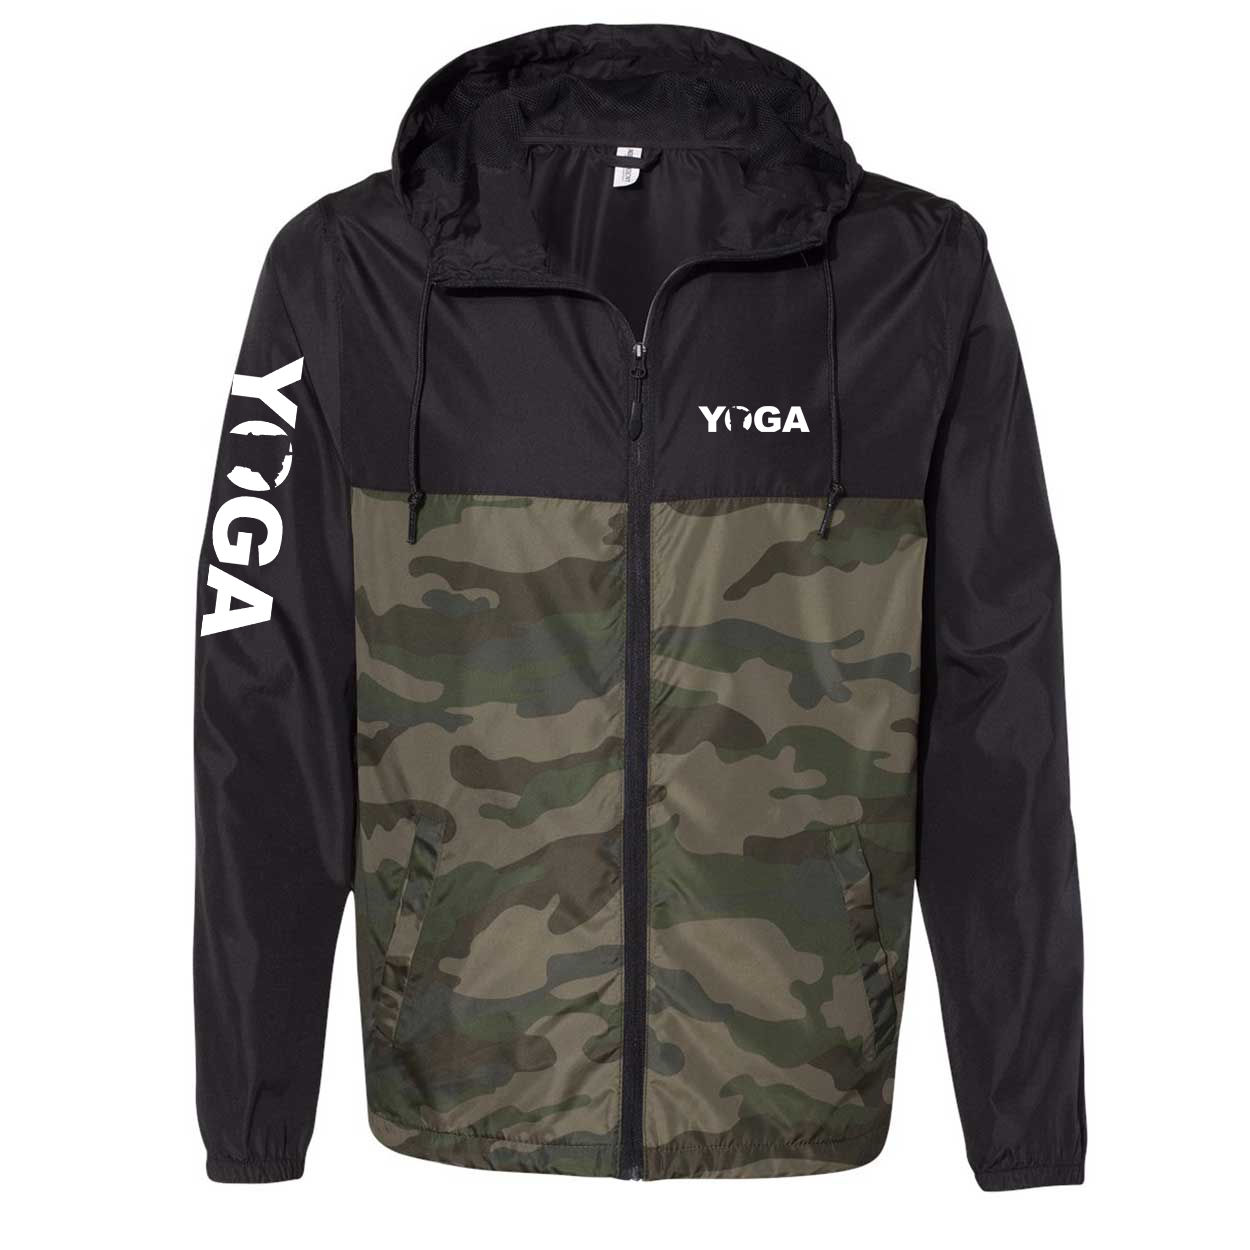 Yoga Minnesota Classic Lightweight Windbreaker Black/Forest Camo (White Logo)